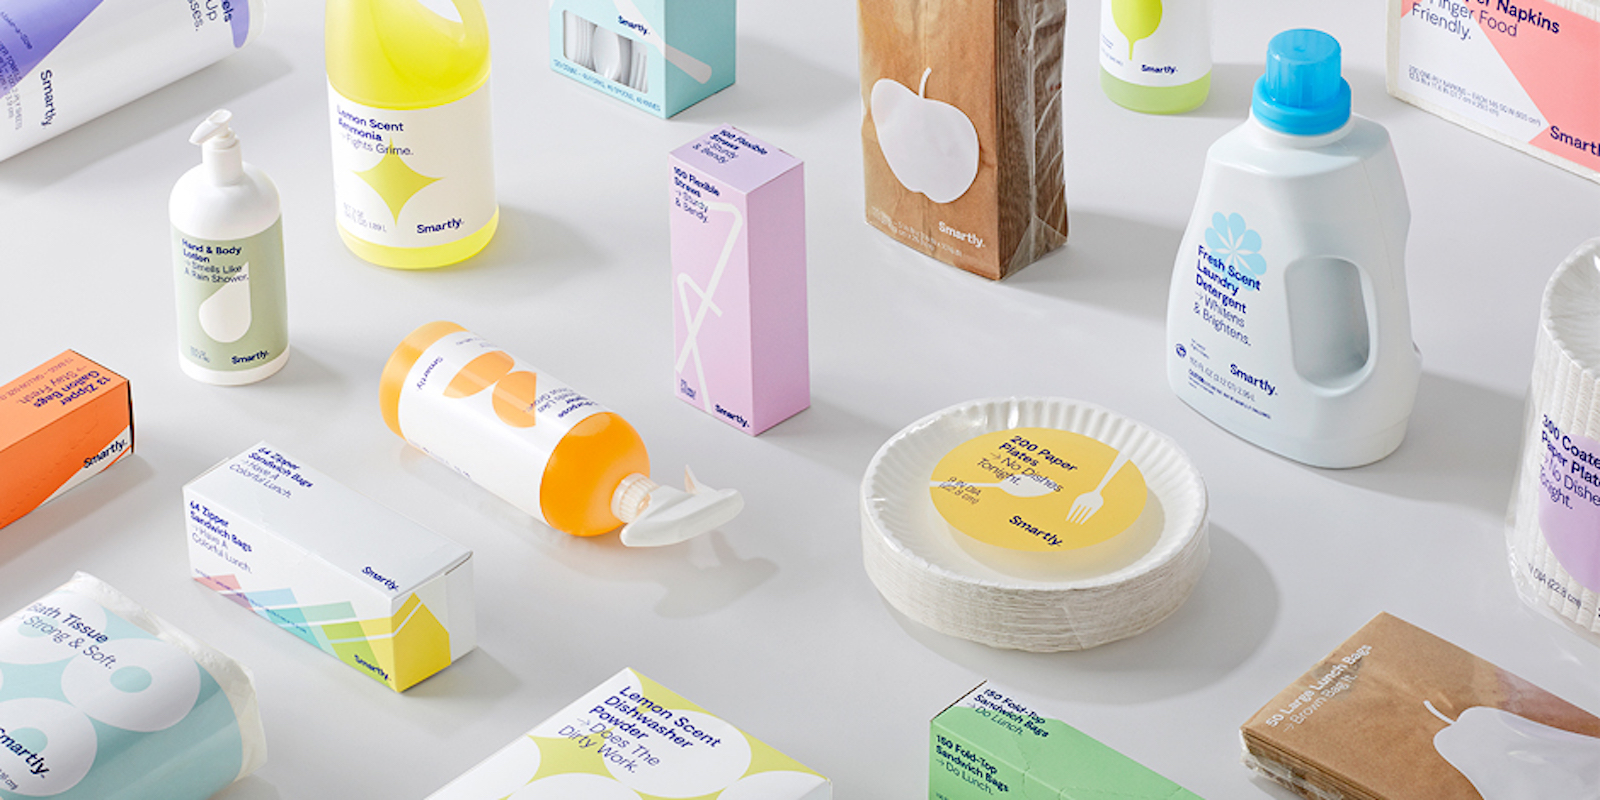 Cute packaging for home products, Target Smartly brand